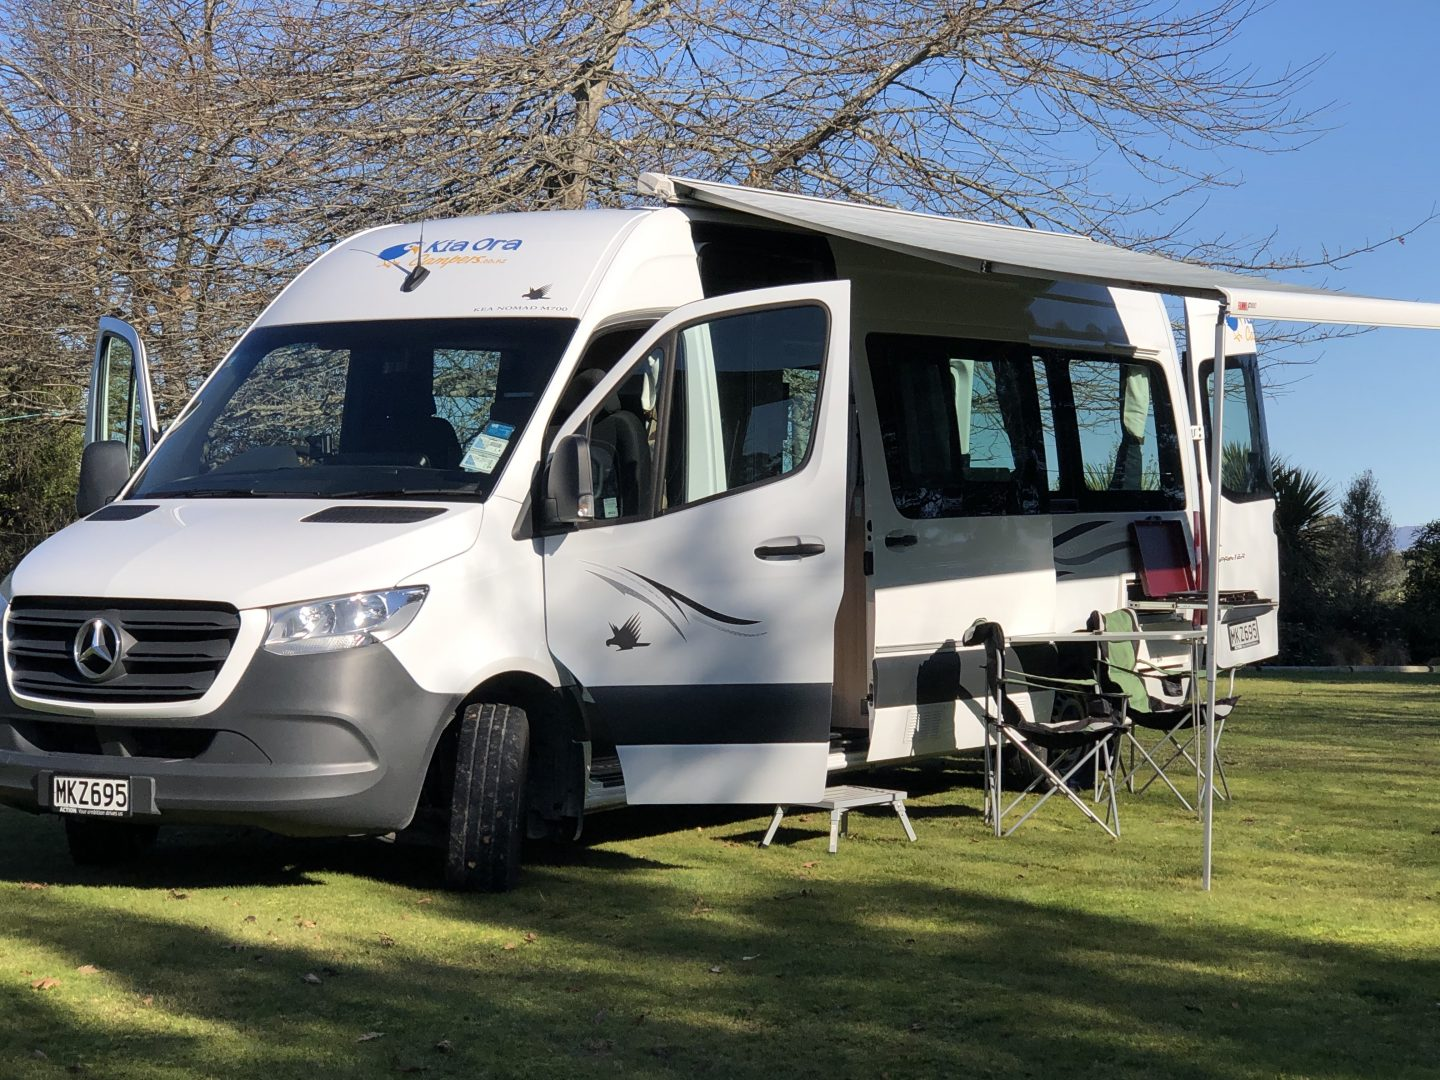 campervan with tables and chairs under awning